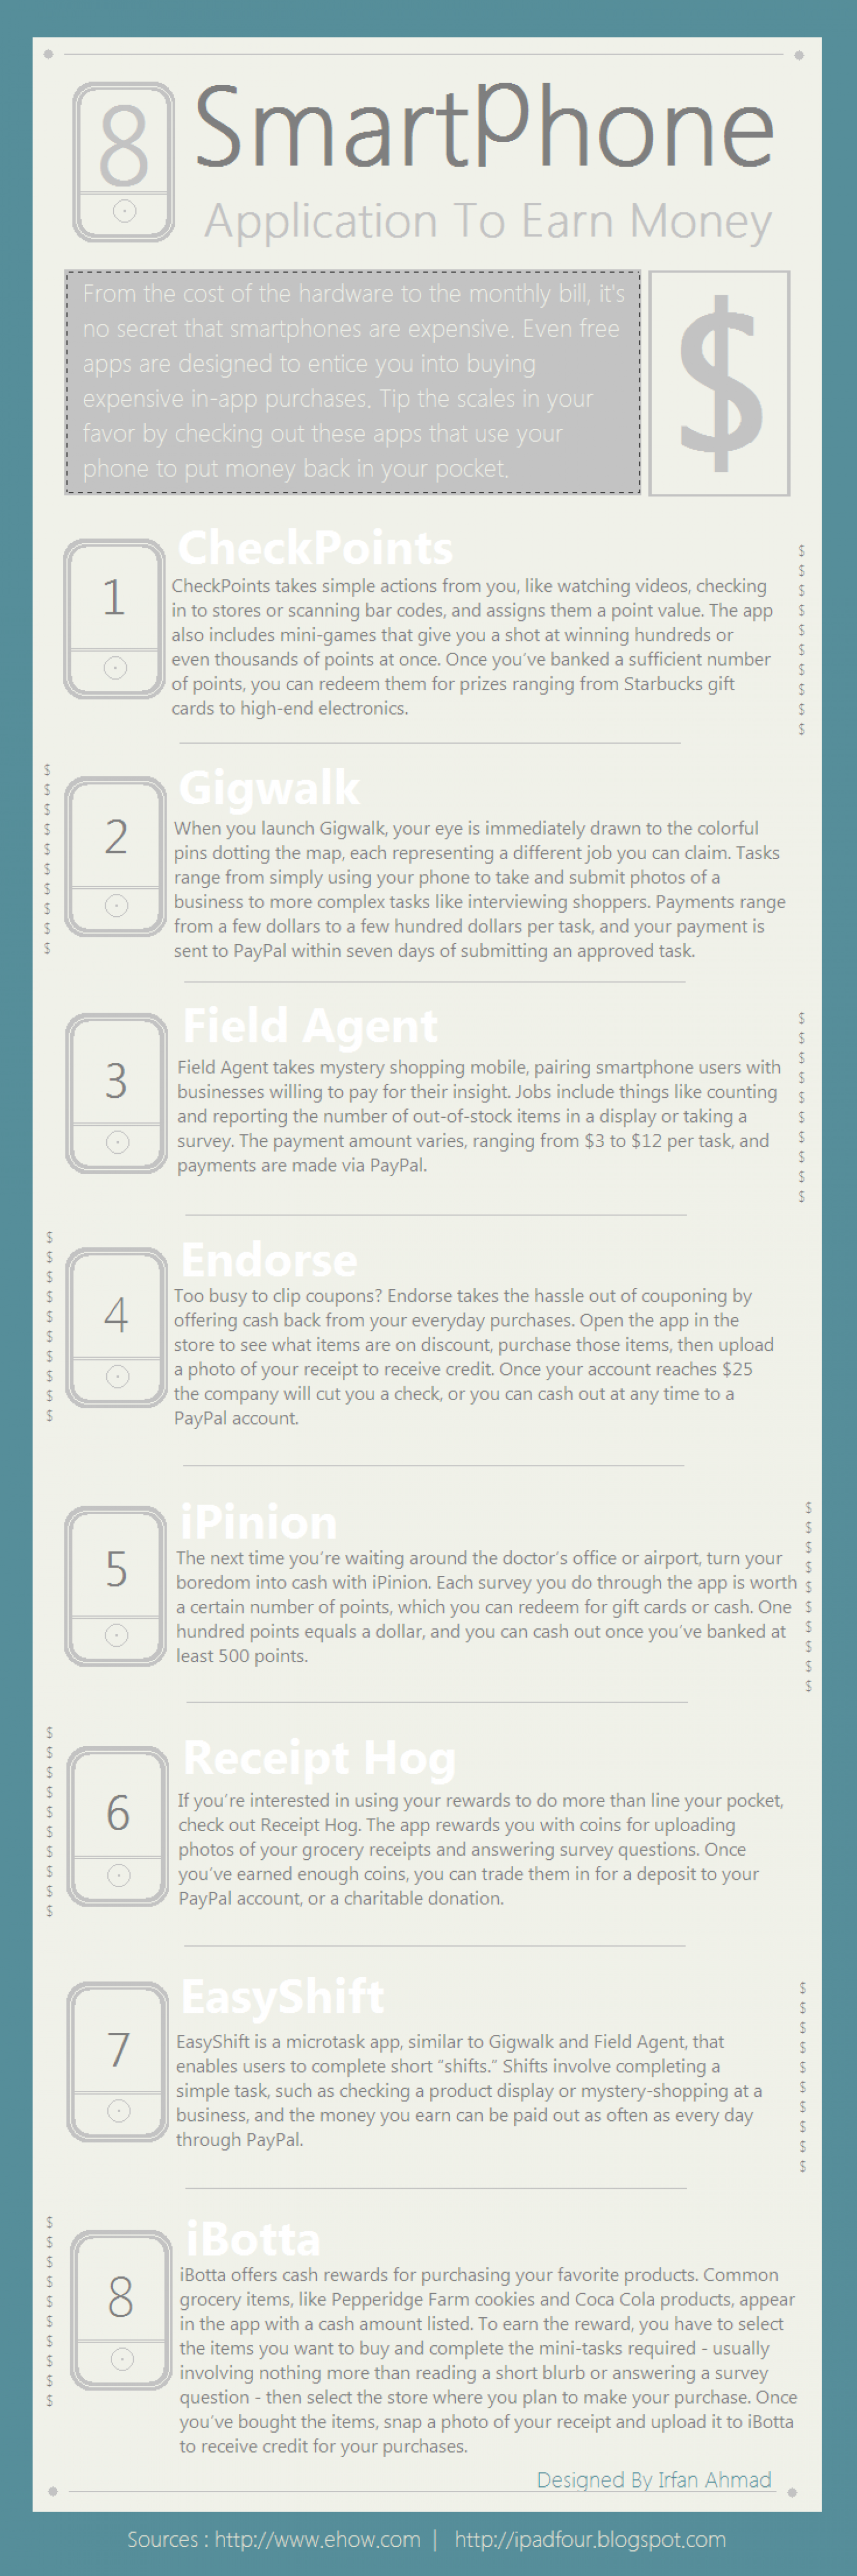 8 Best Applications To Make Money With Smartphones Infographic